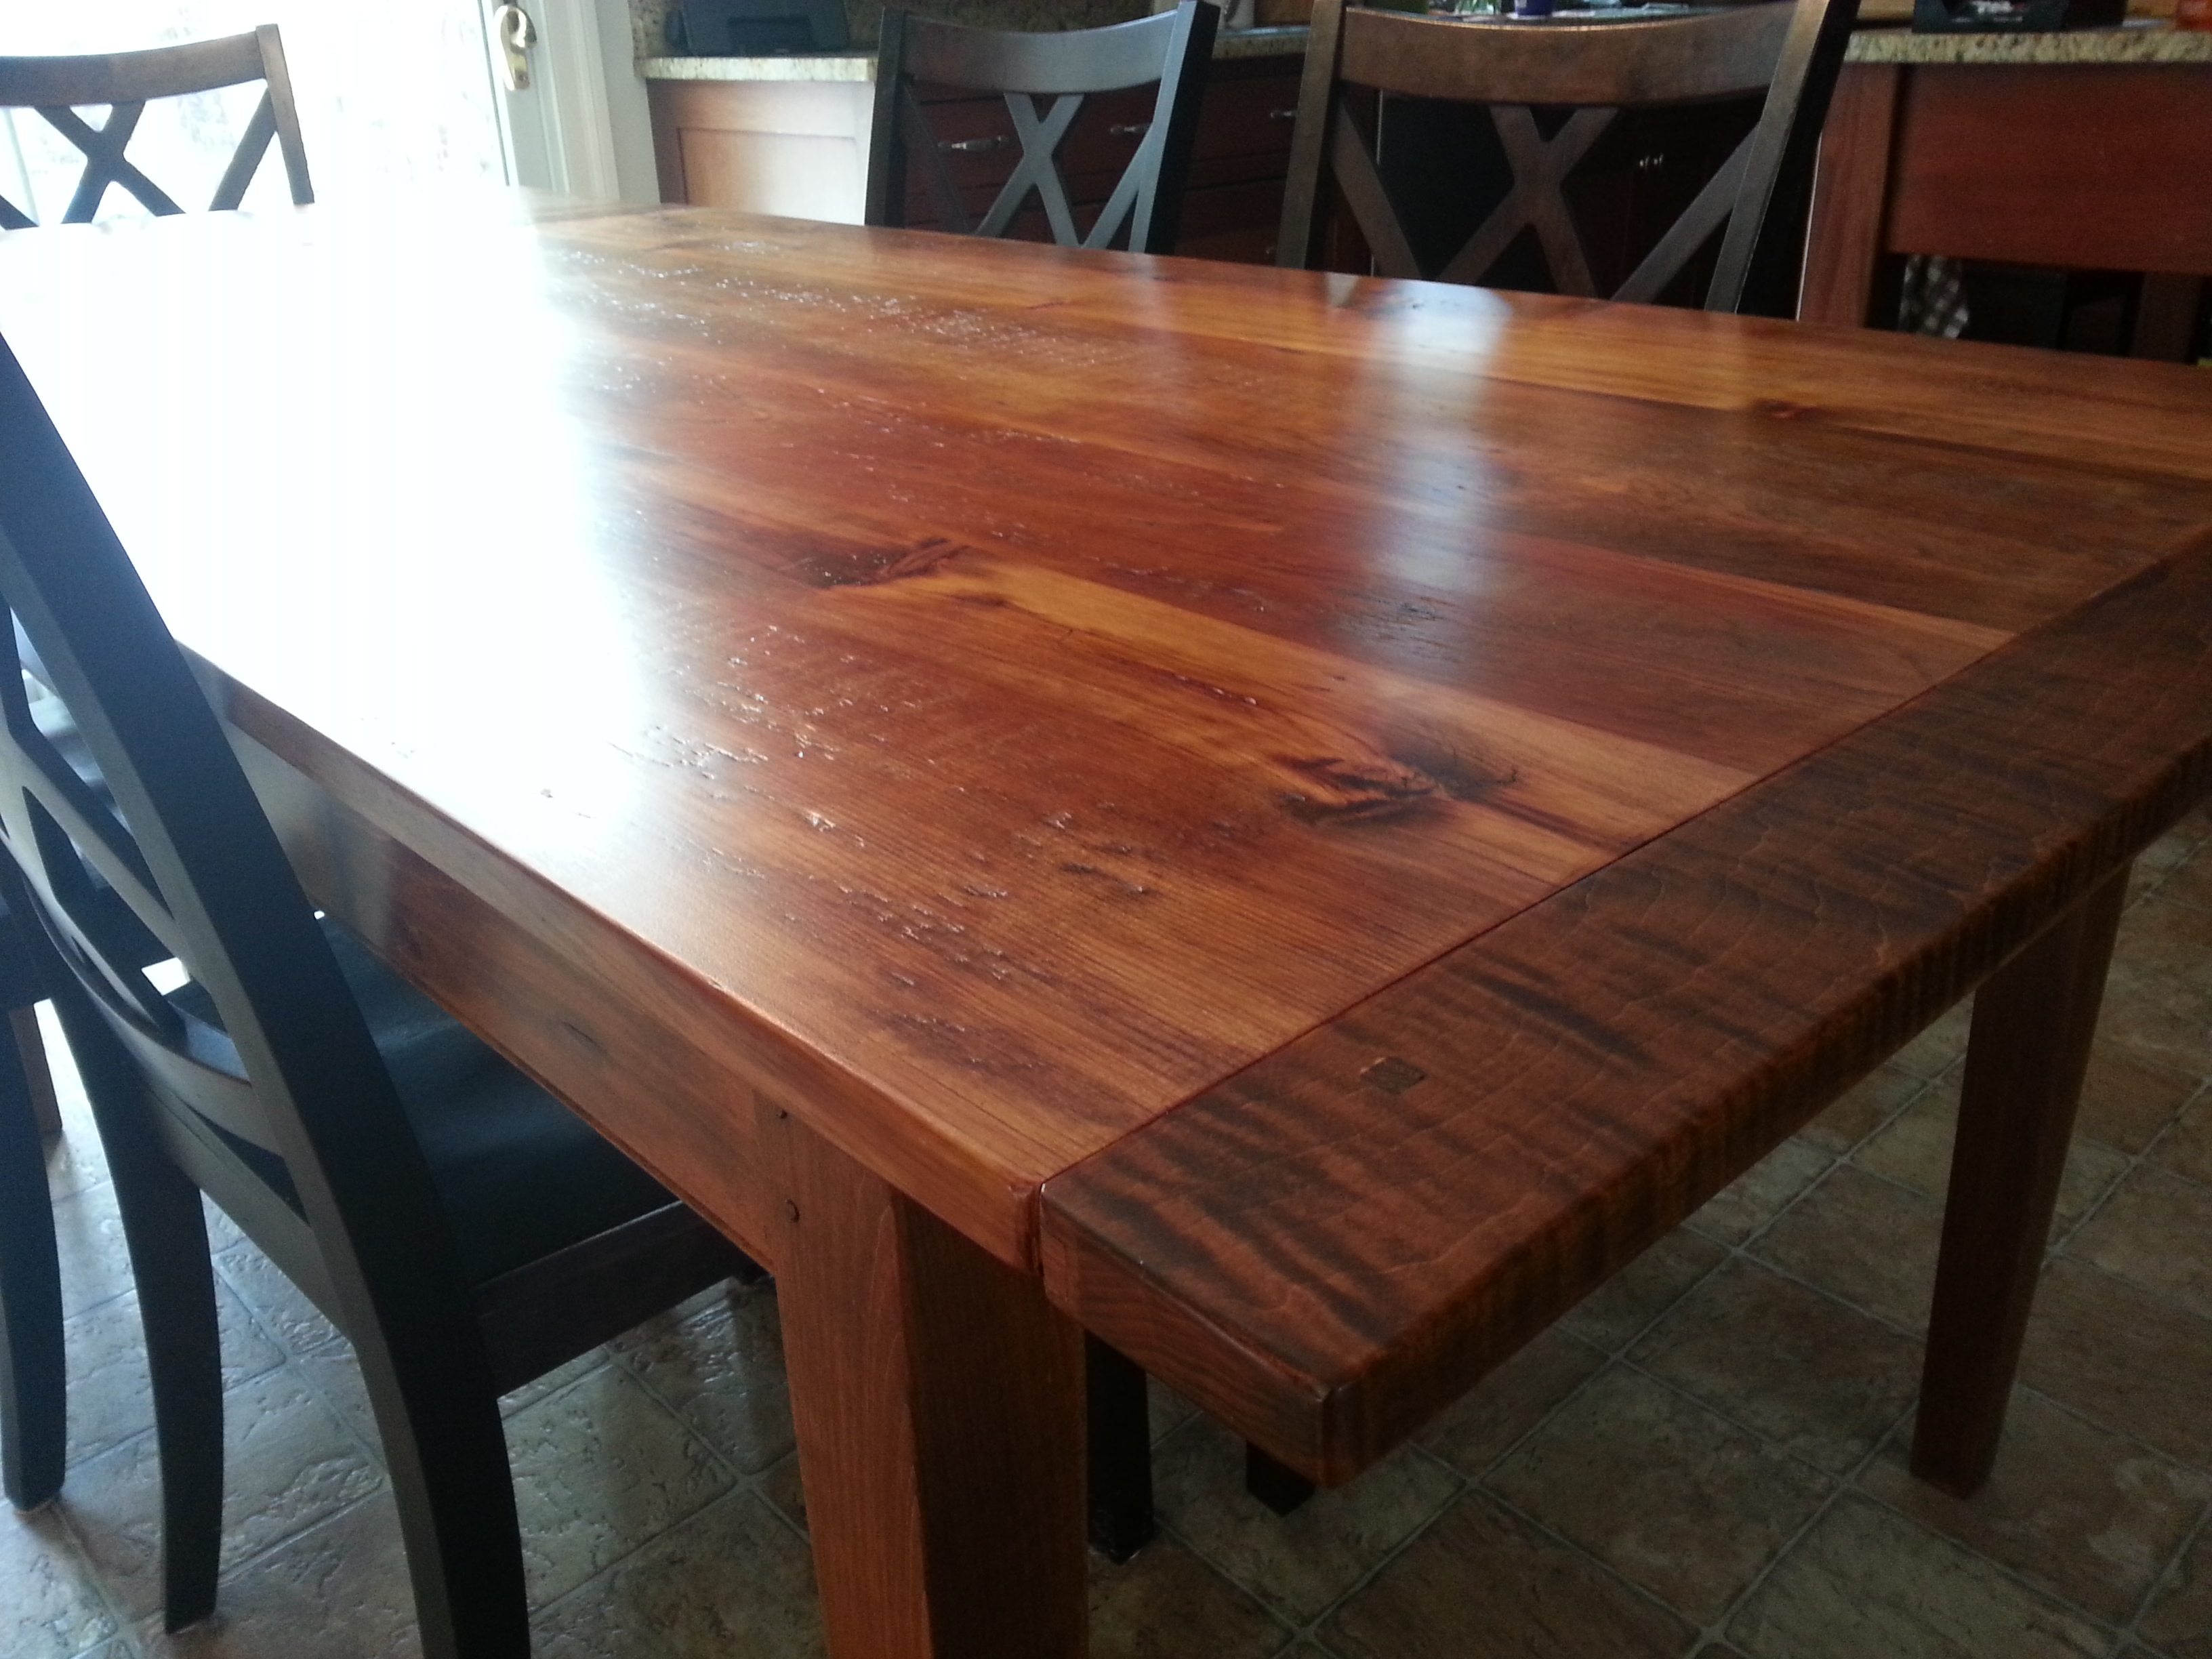 Reclaimed Pine top table #11B